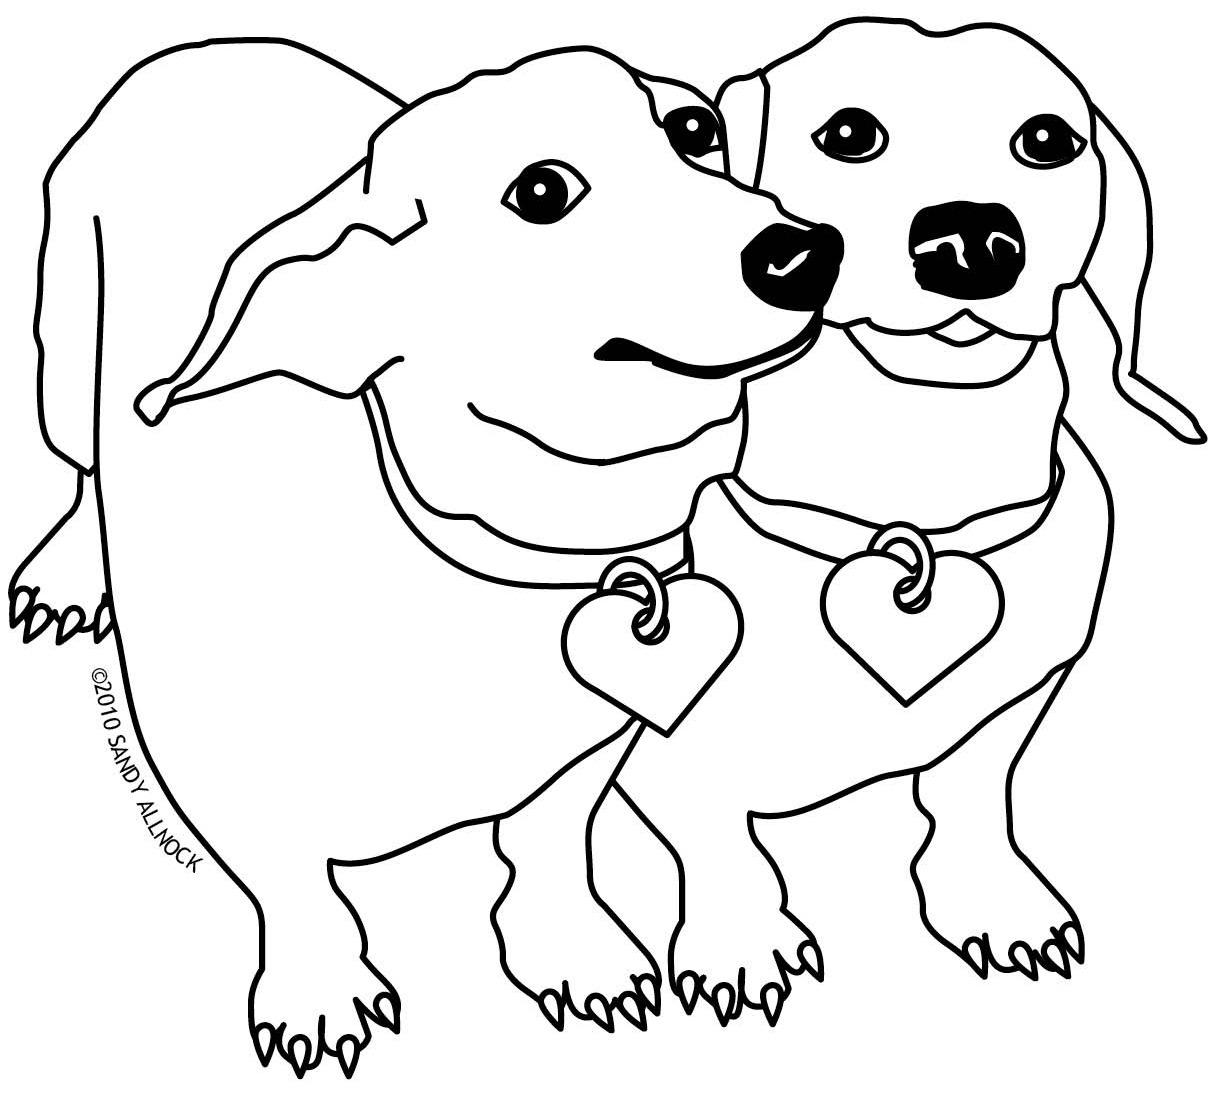 dachshund coloring pictures st bernard coloring pages at getcoloringscom free dachshund coloring pictures